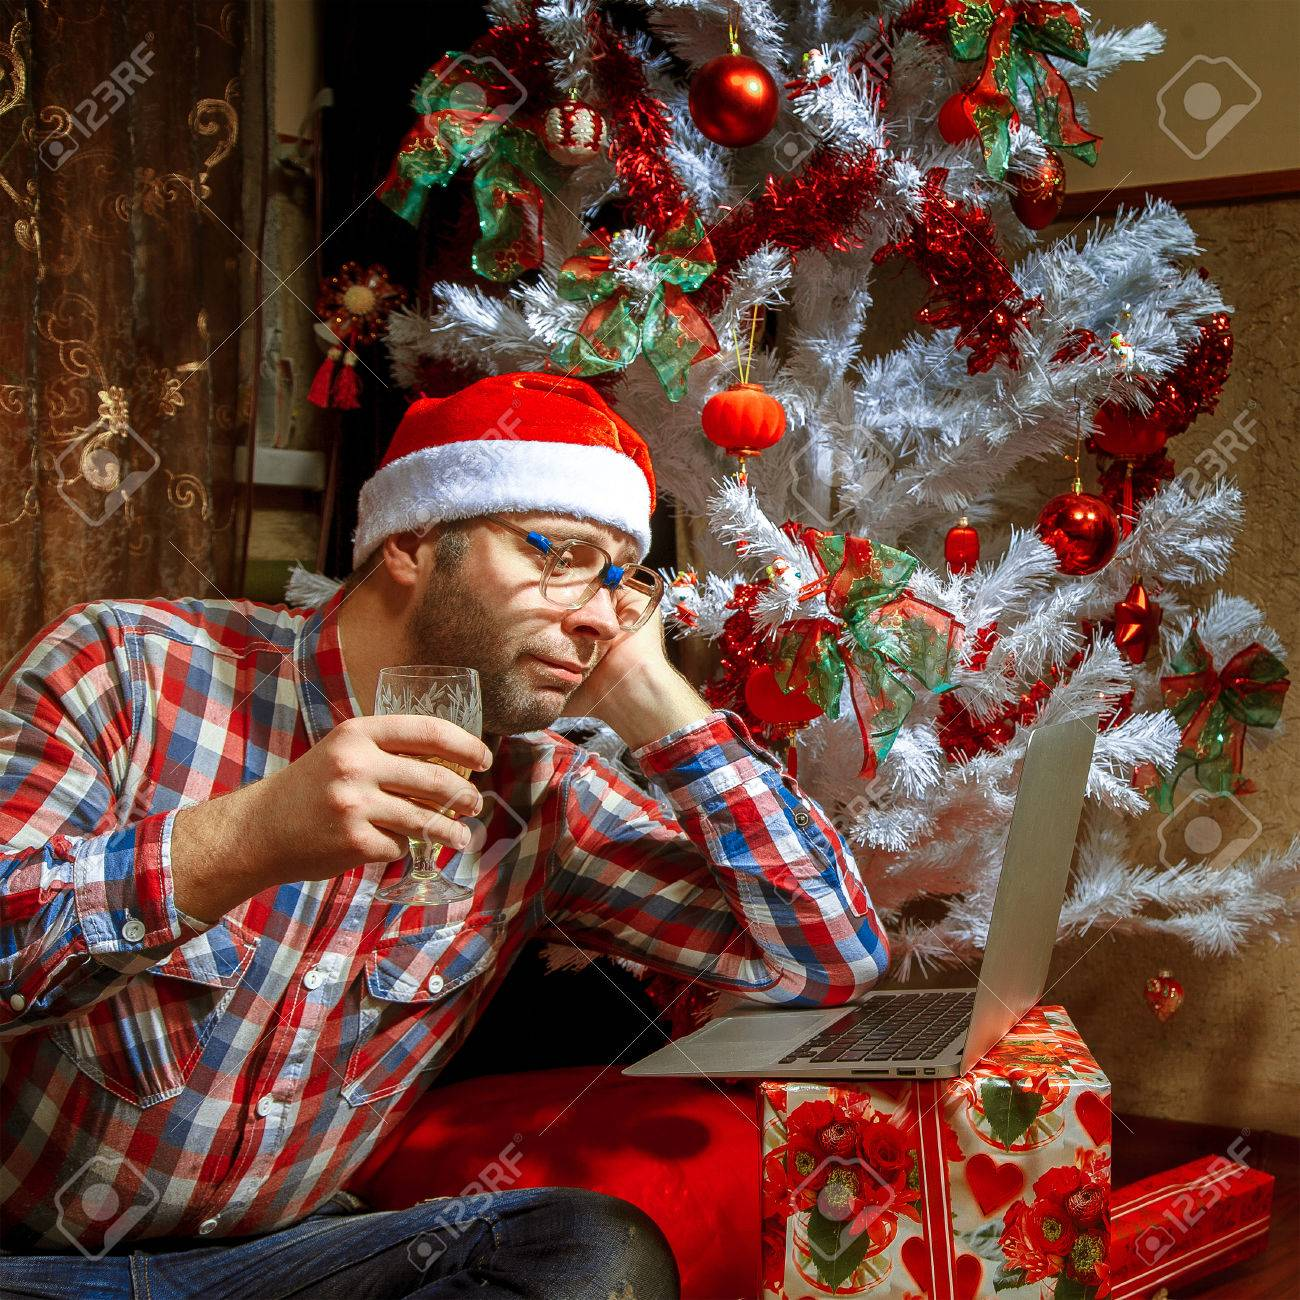 Lonely On Christmas.Lonely Christmas Nerd With A Laptop Under The Tree